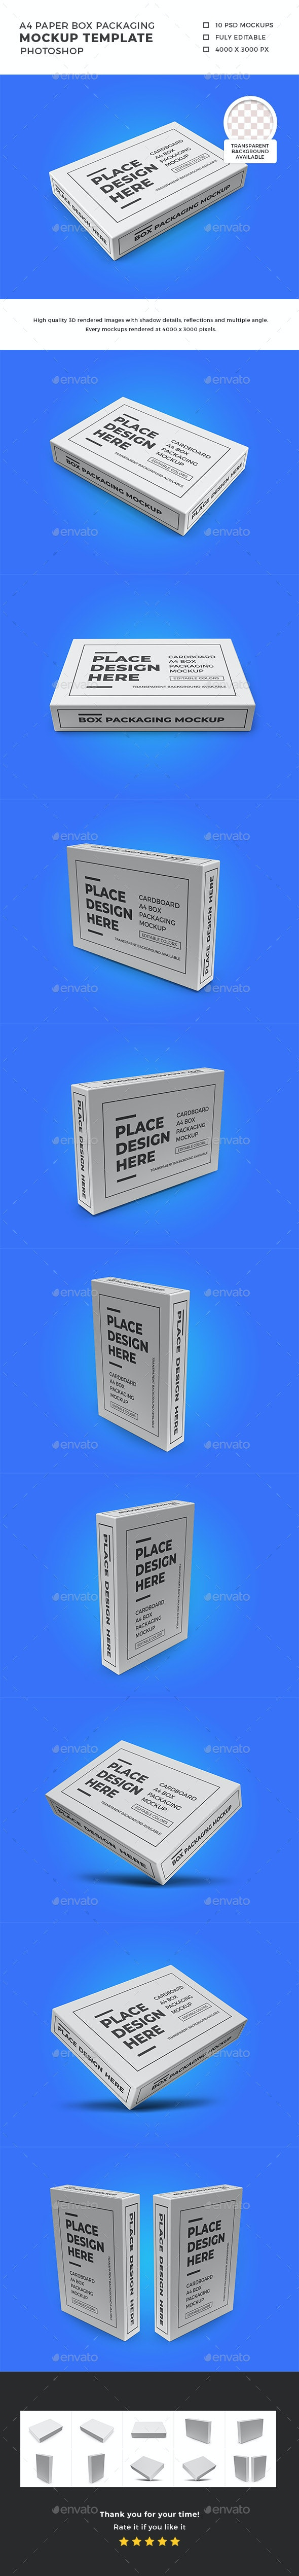 A4 Paper Box Packaging Mockup Template Set - Packaging Product Mock-Ups